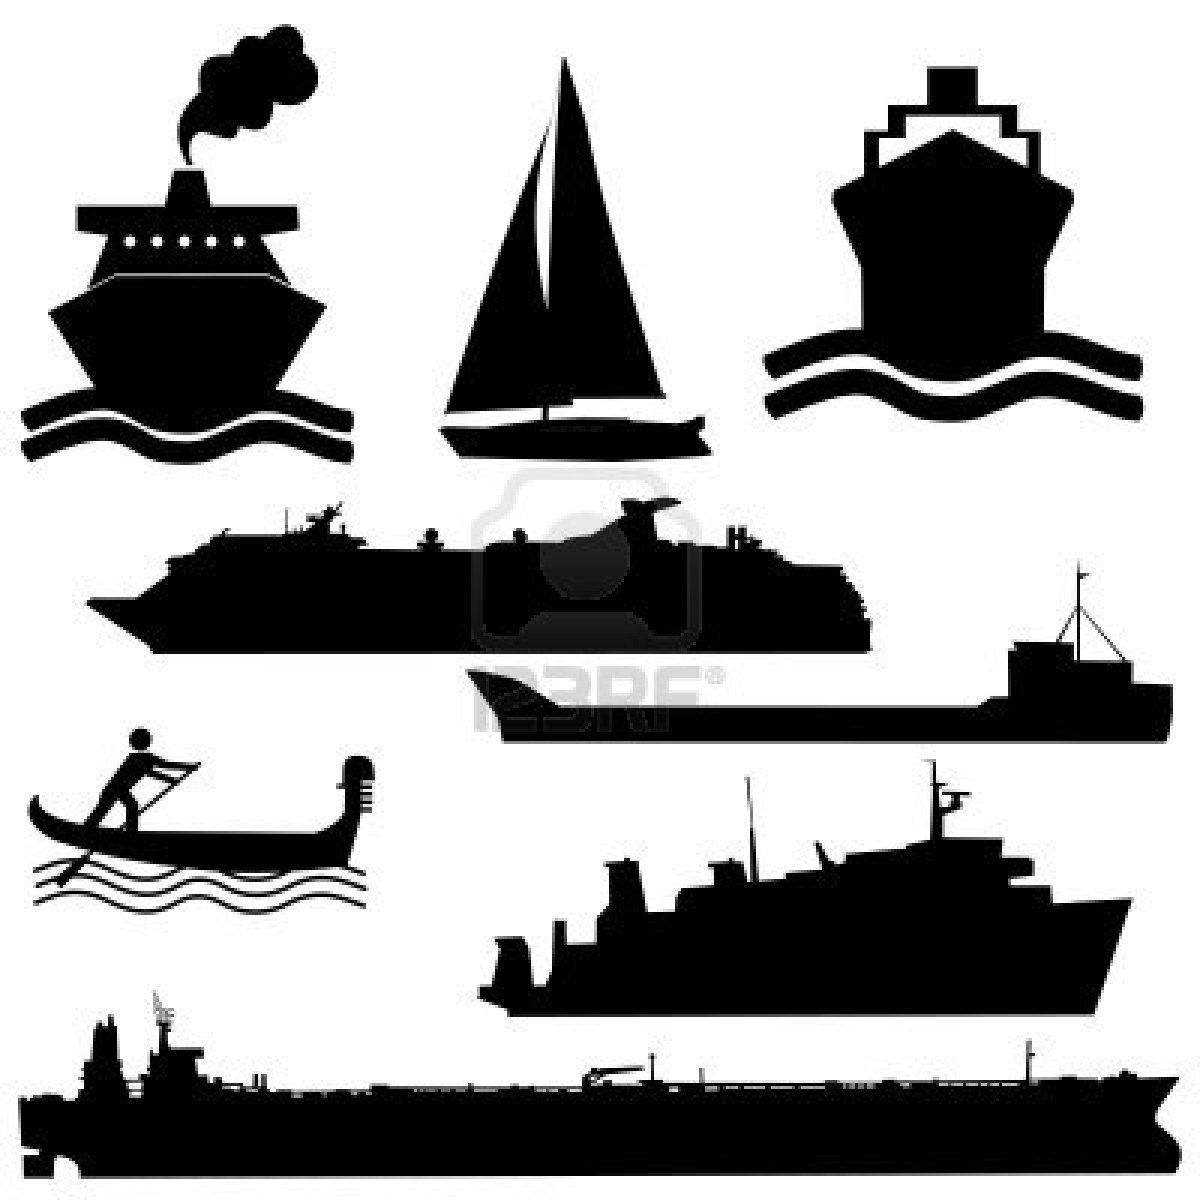 Assorted boat silhouettes ferry. Boats clipart tanker